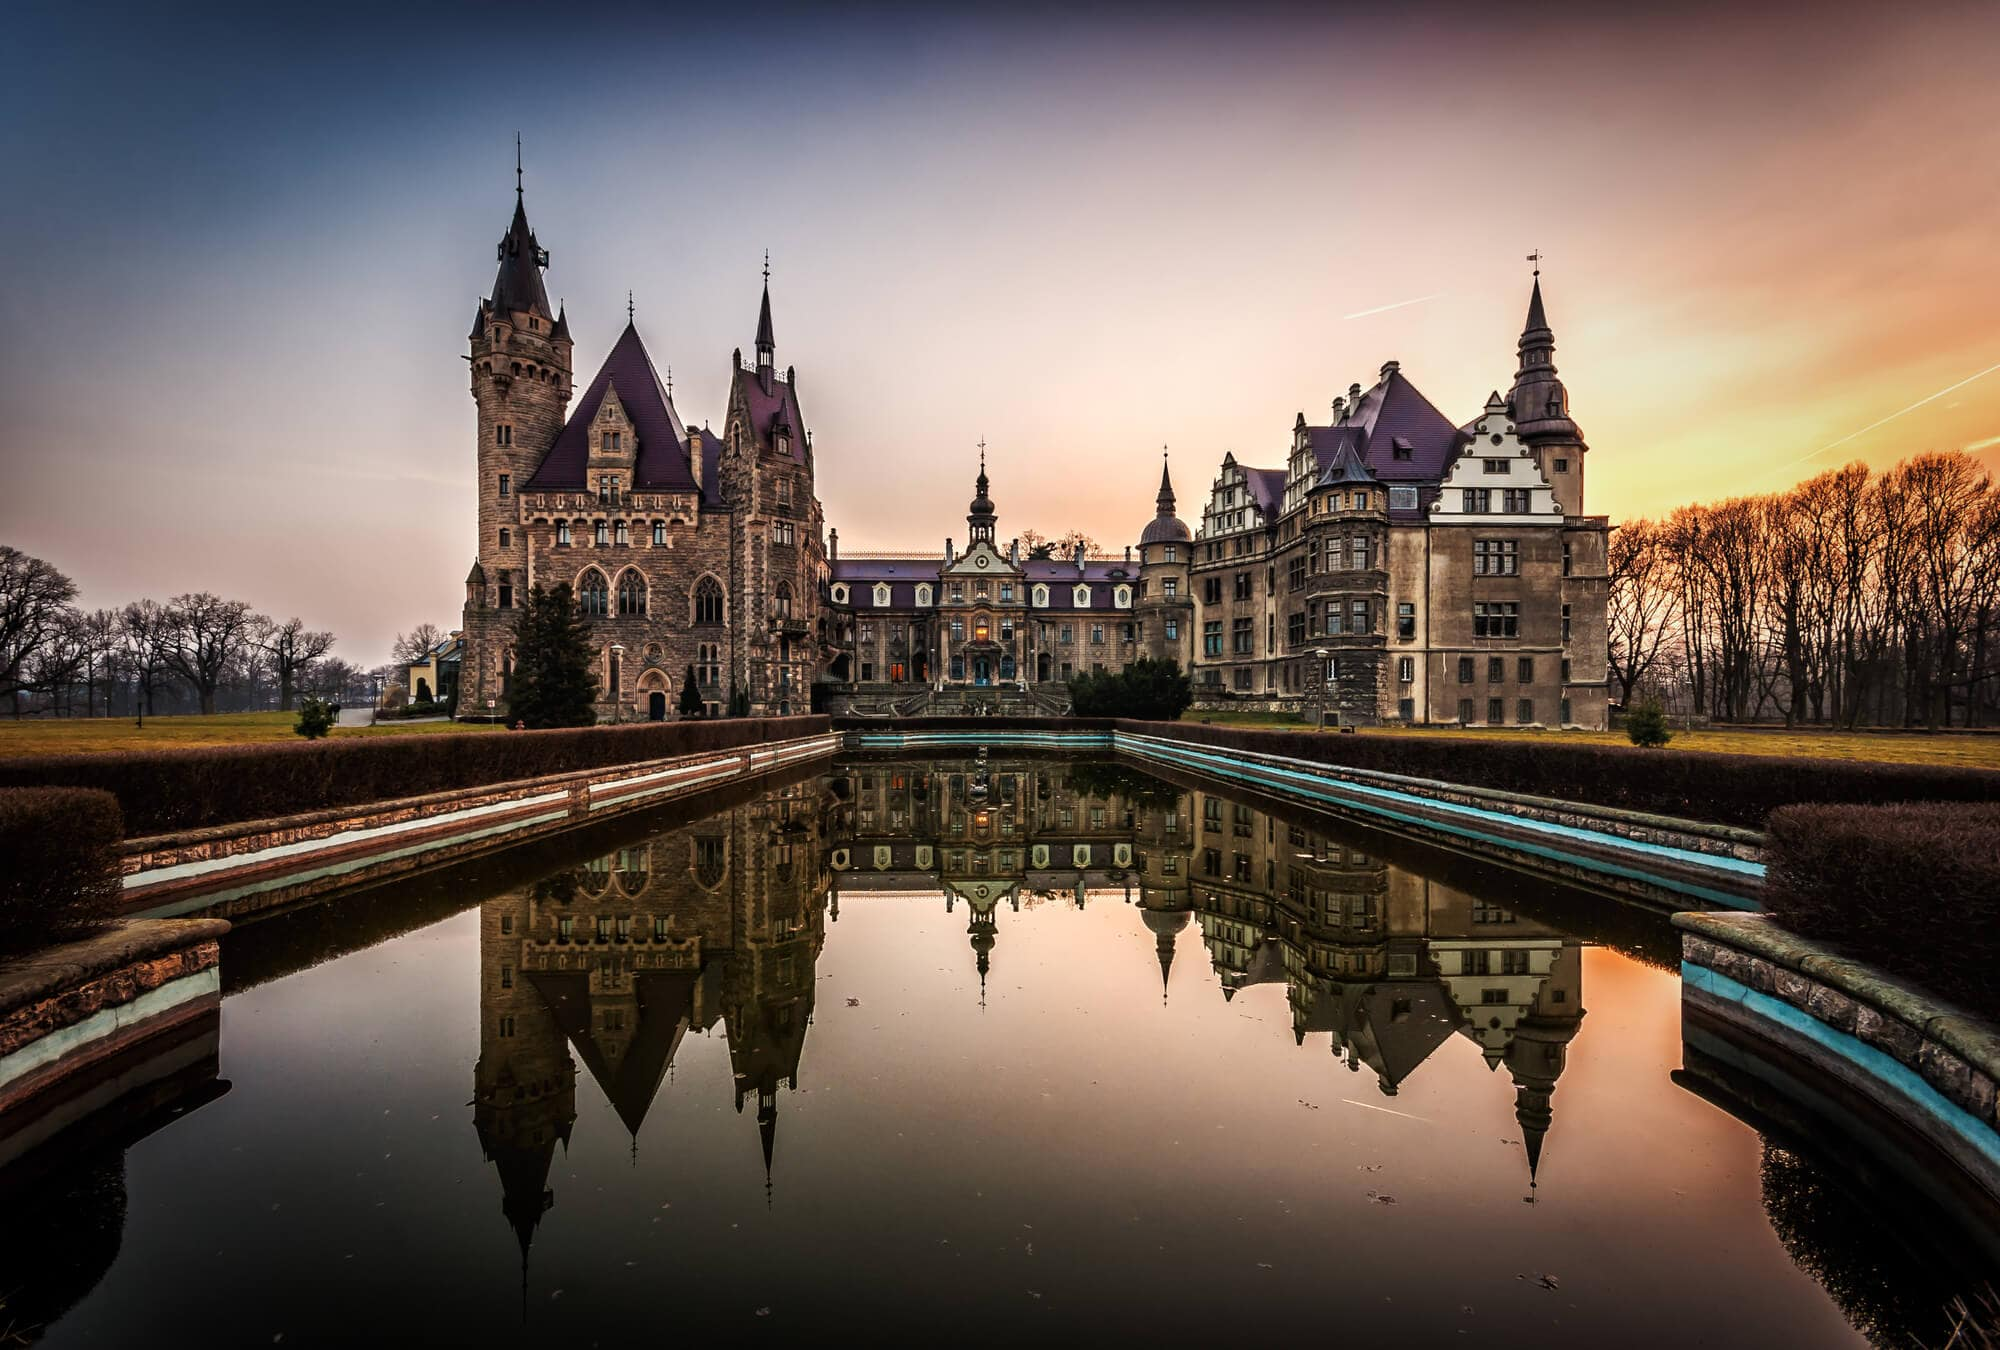 12 of the most beautiful castle in Poland you should add to your bucket list - Moszna Castle